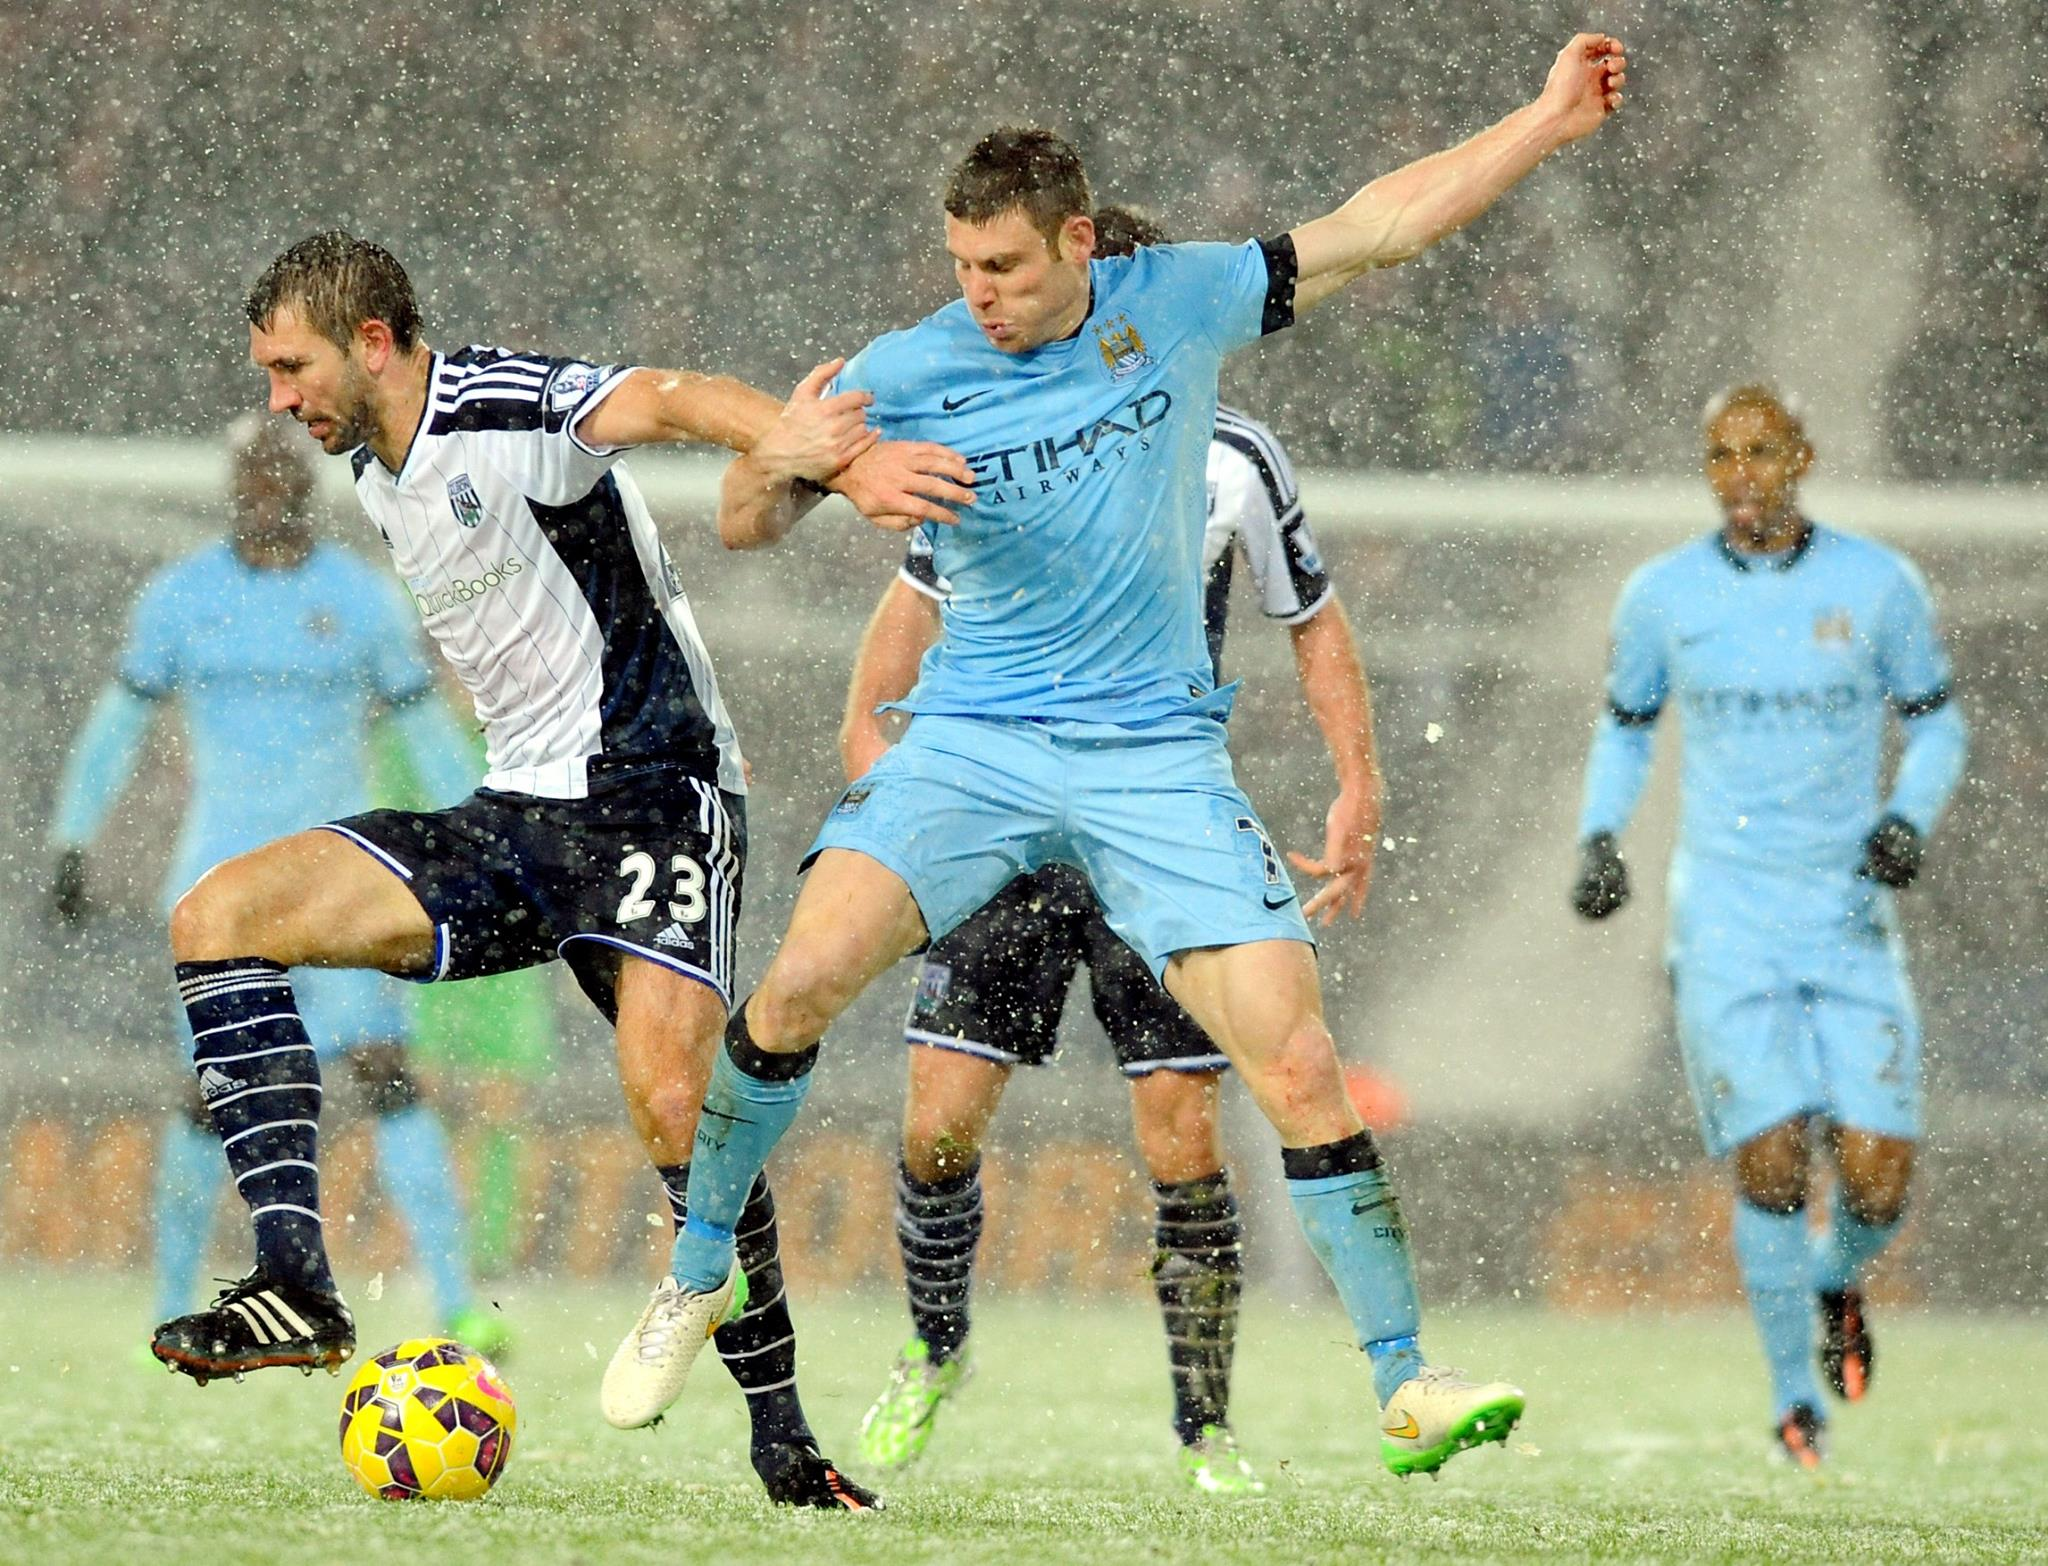 Showtime in the snow - City brought festive joy at WBA. Courtesy@MCFC